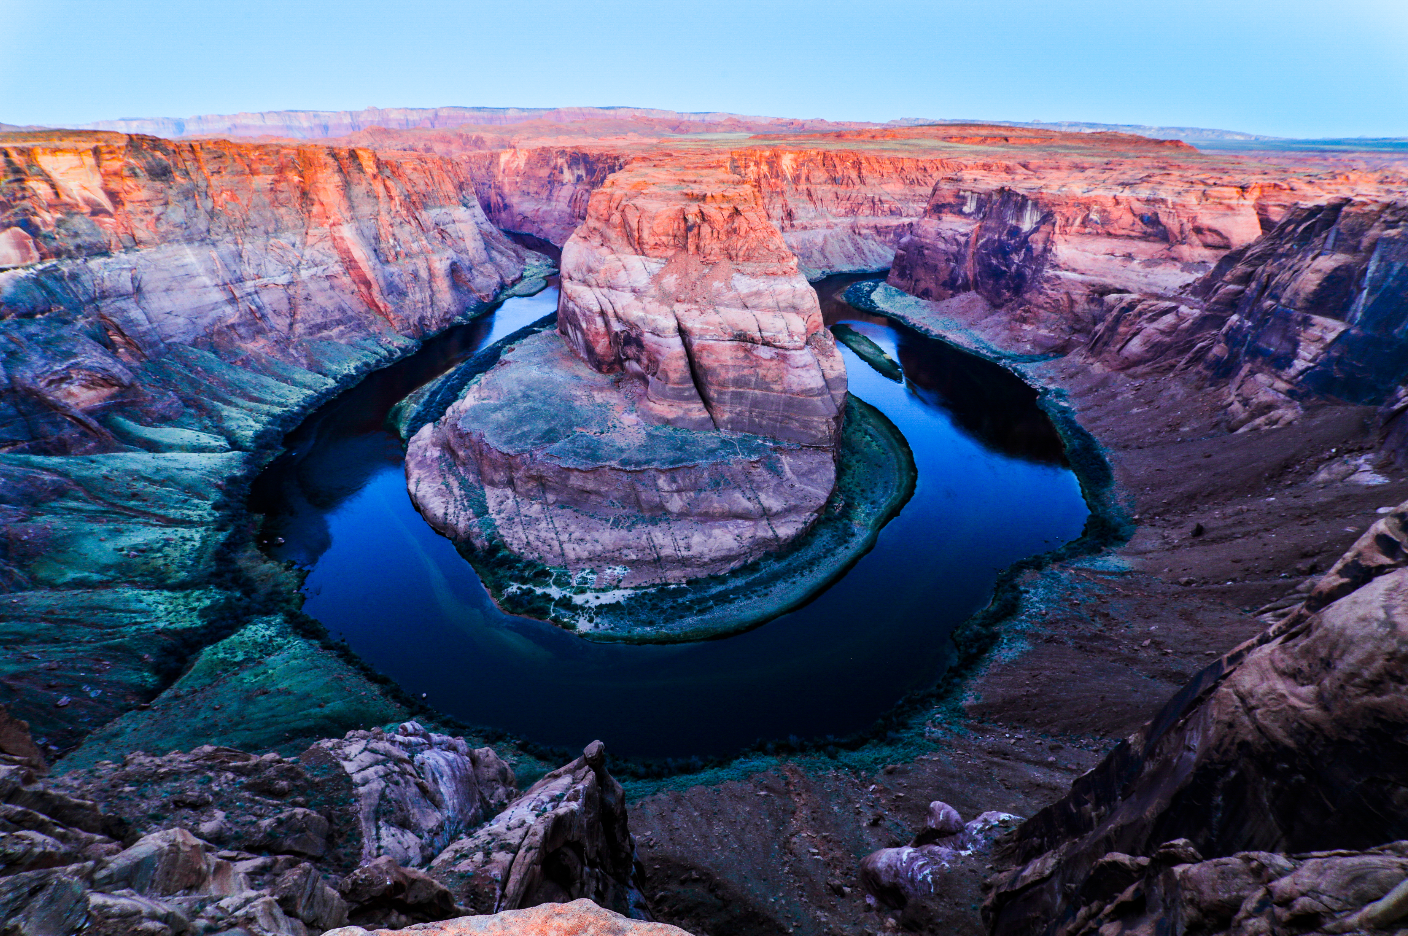 Horseshoe Bend (Page, Arizona). Horseshoe Bend is a scenic area where the Colorado River decided to change paths creating this world famous bend. Getting there at 5:00 am to beat the crowd proved to be a good move as just 20 minutes after sunrise the rim was packed. This is not for the faint of heart as there is no railing and no safety nets. Just two feet in front is a several hundred foot drop. This is something I have wanted to shoot for years and excited to get it done.